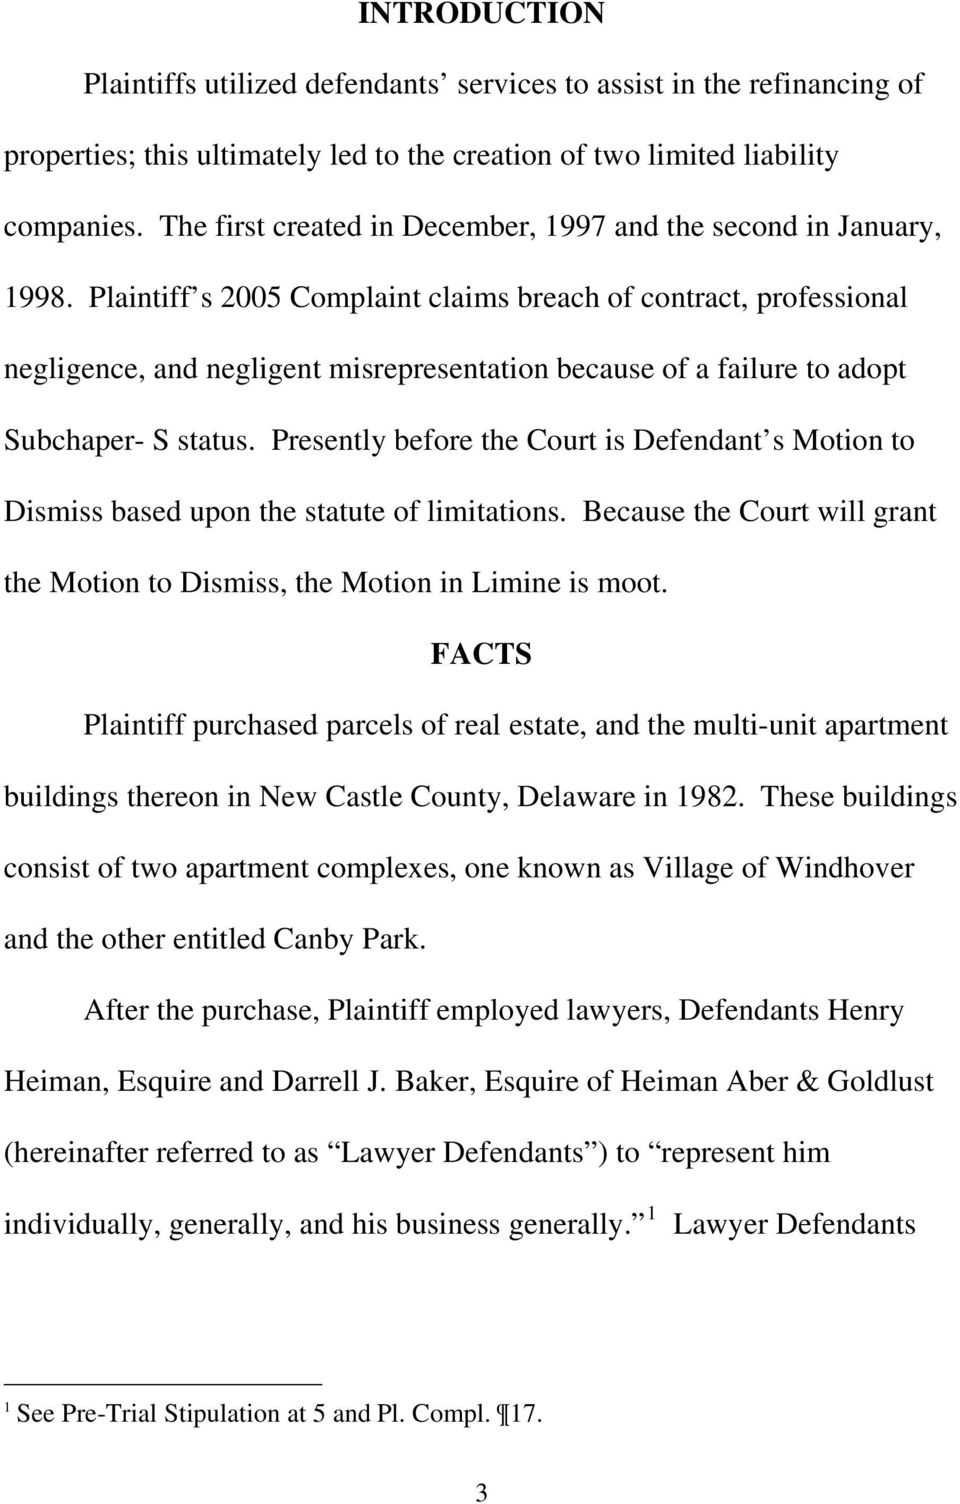 Plaintiff s 2005 Complaint claims breach of contract, professional negligence, and negligent misrepresentation because of a failure to adopt Subchaper- S status.